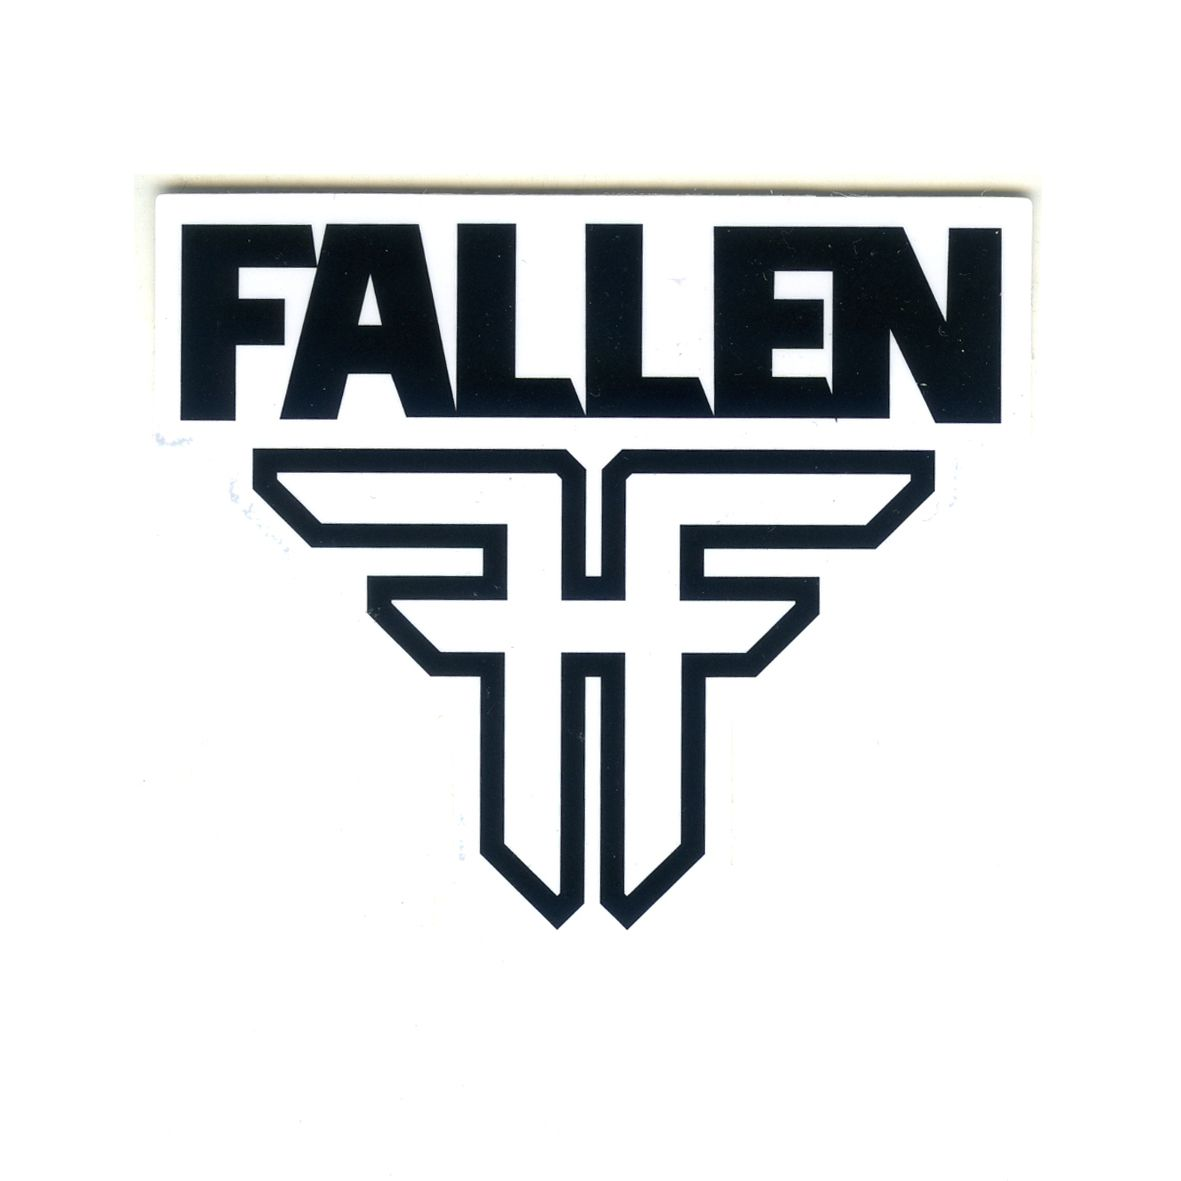 fallen shoes logo pictures to pin on pinterest tattooskid